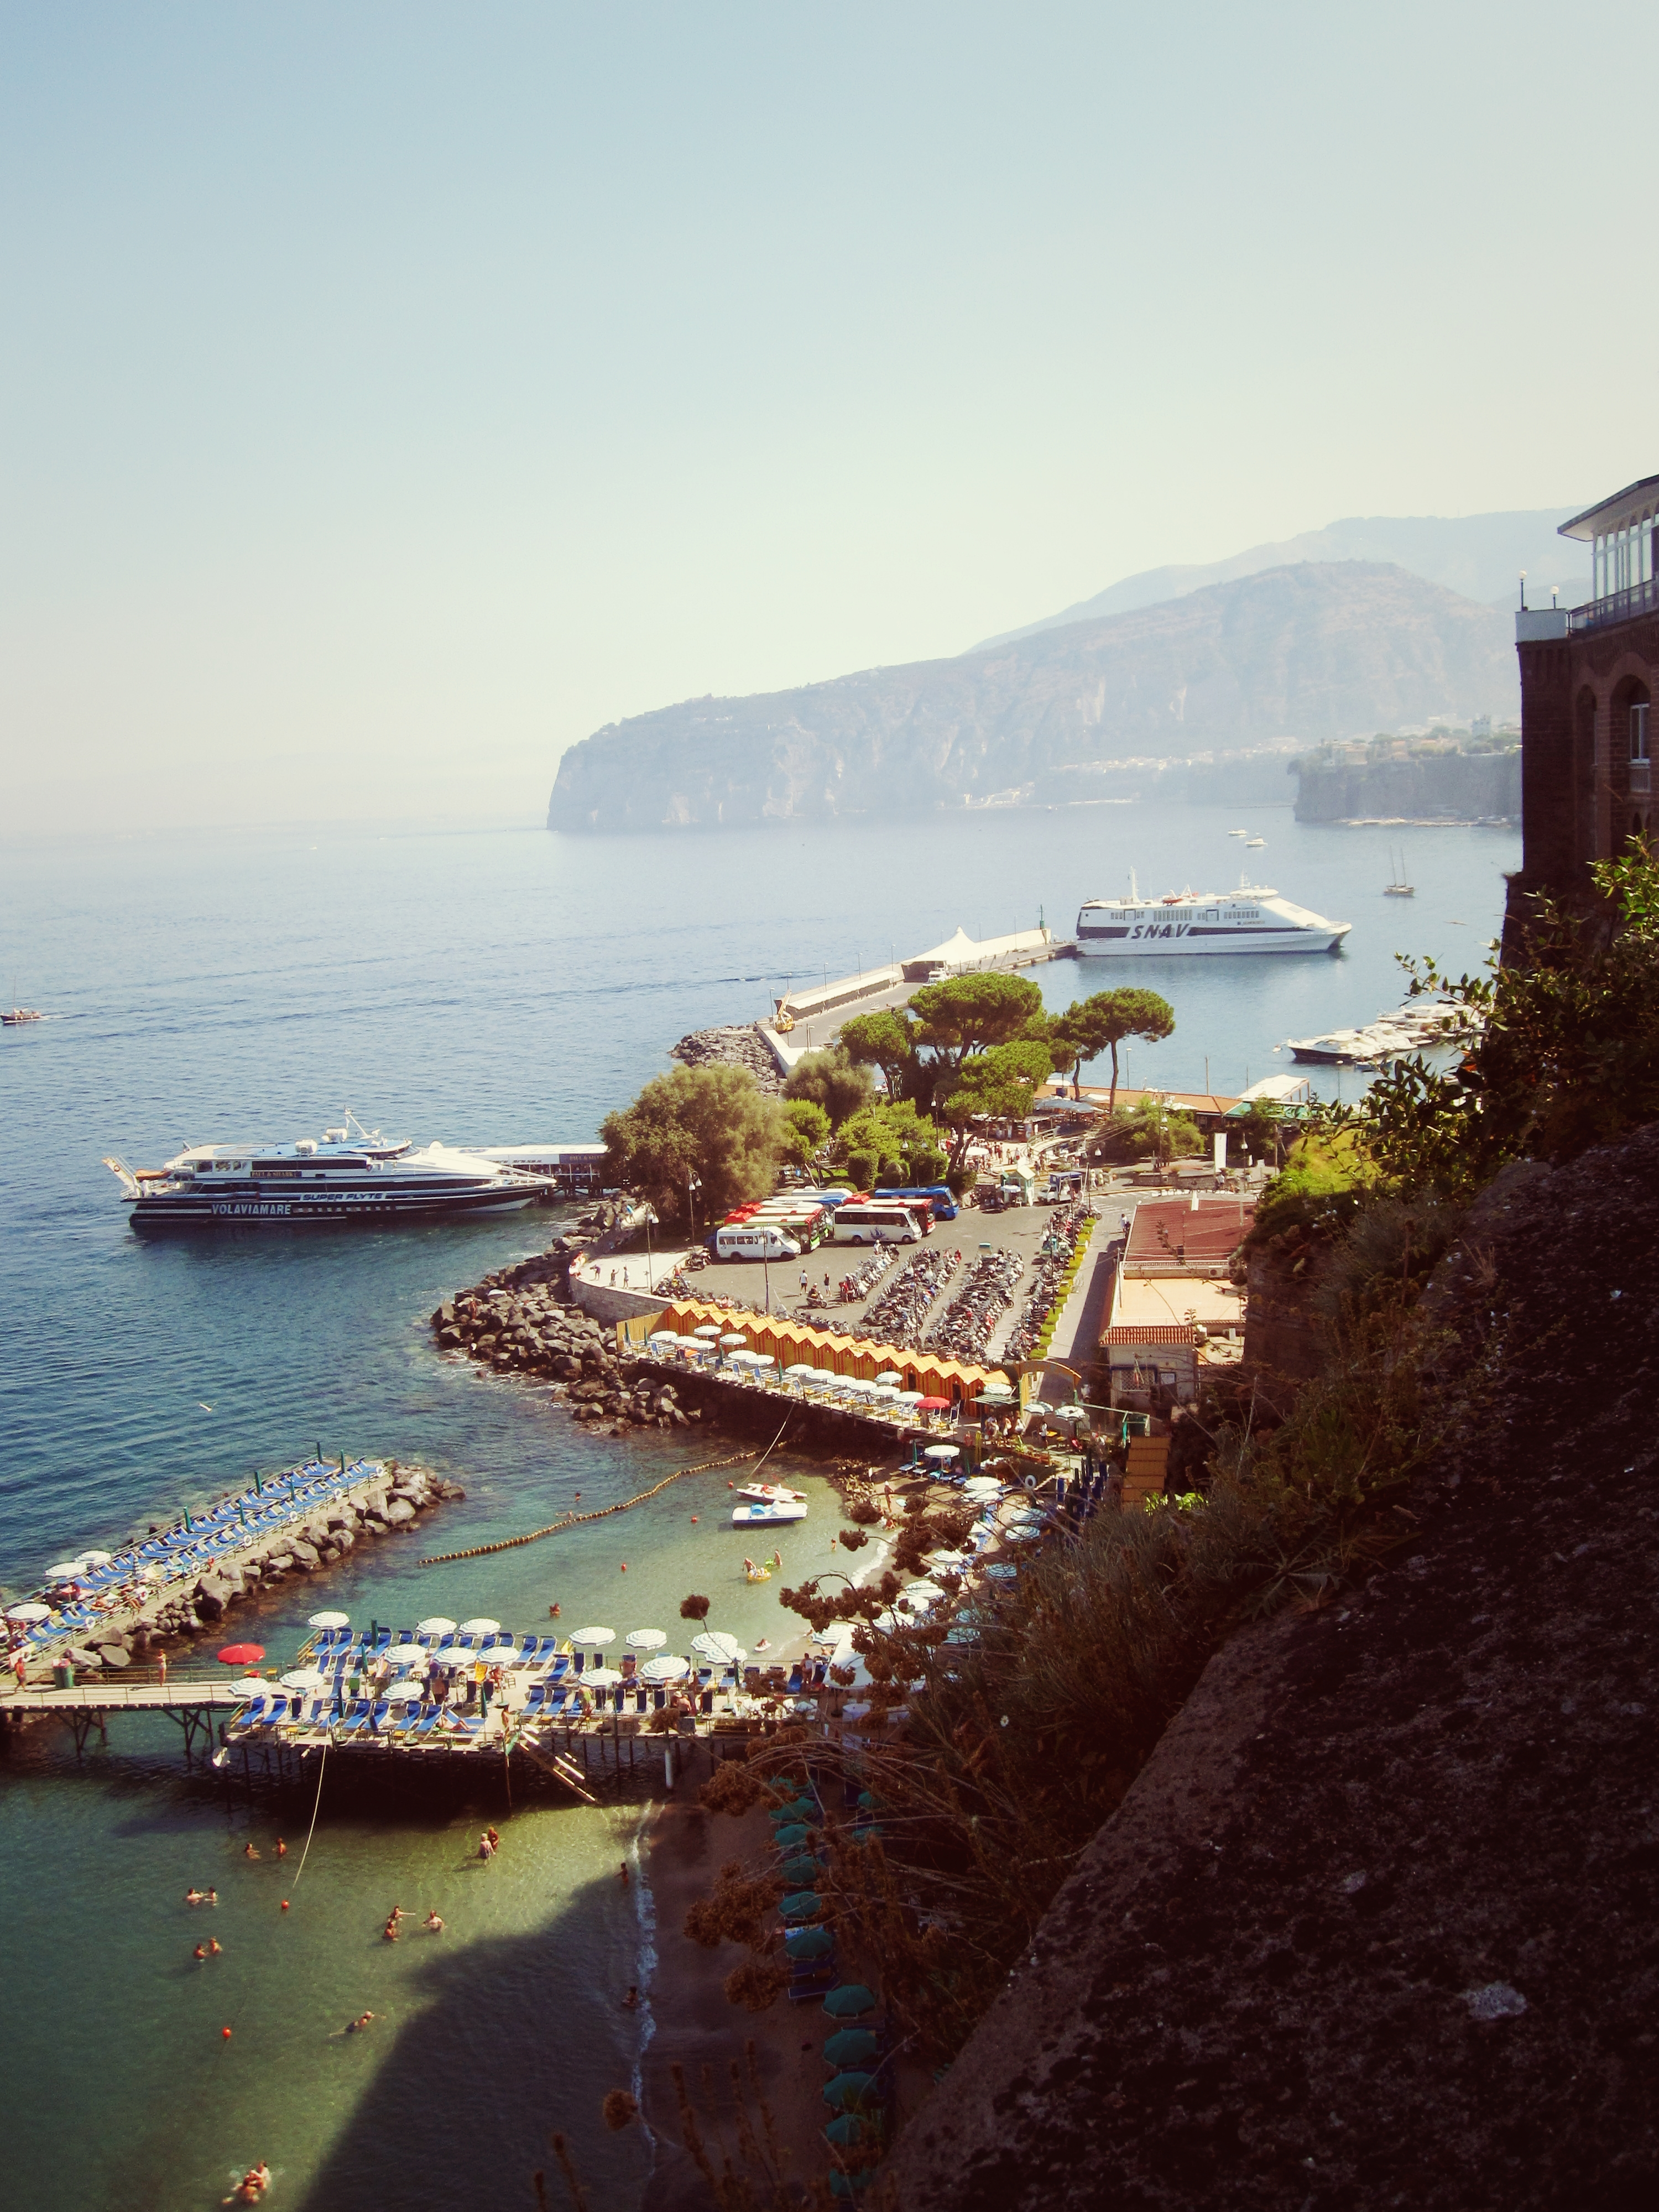 The bay of Sorrento